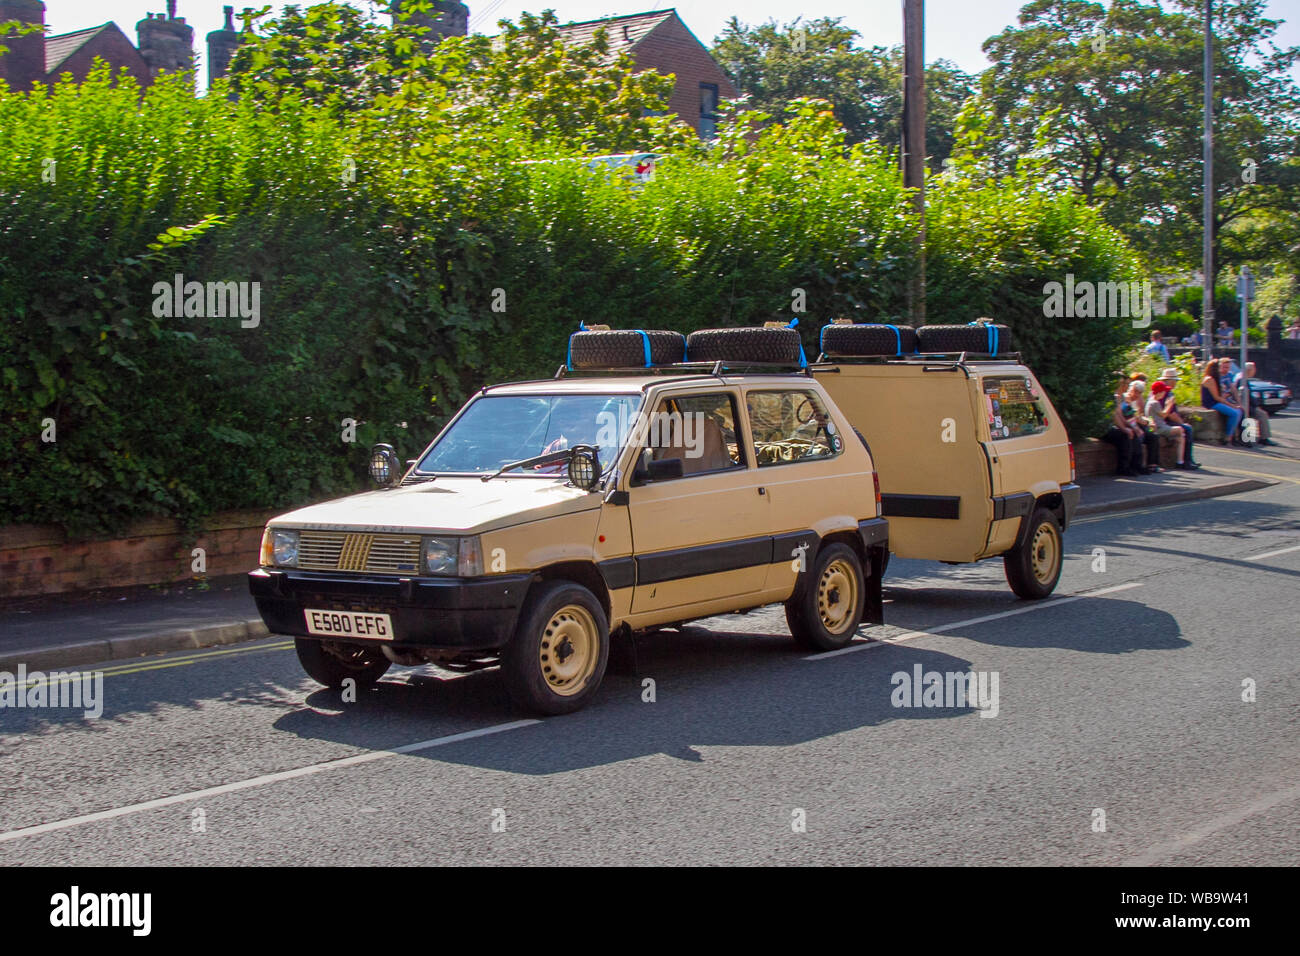 Fiat Panda Van High Resolution Stock Photography And Images Alamy